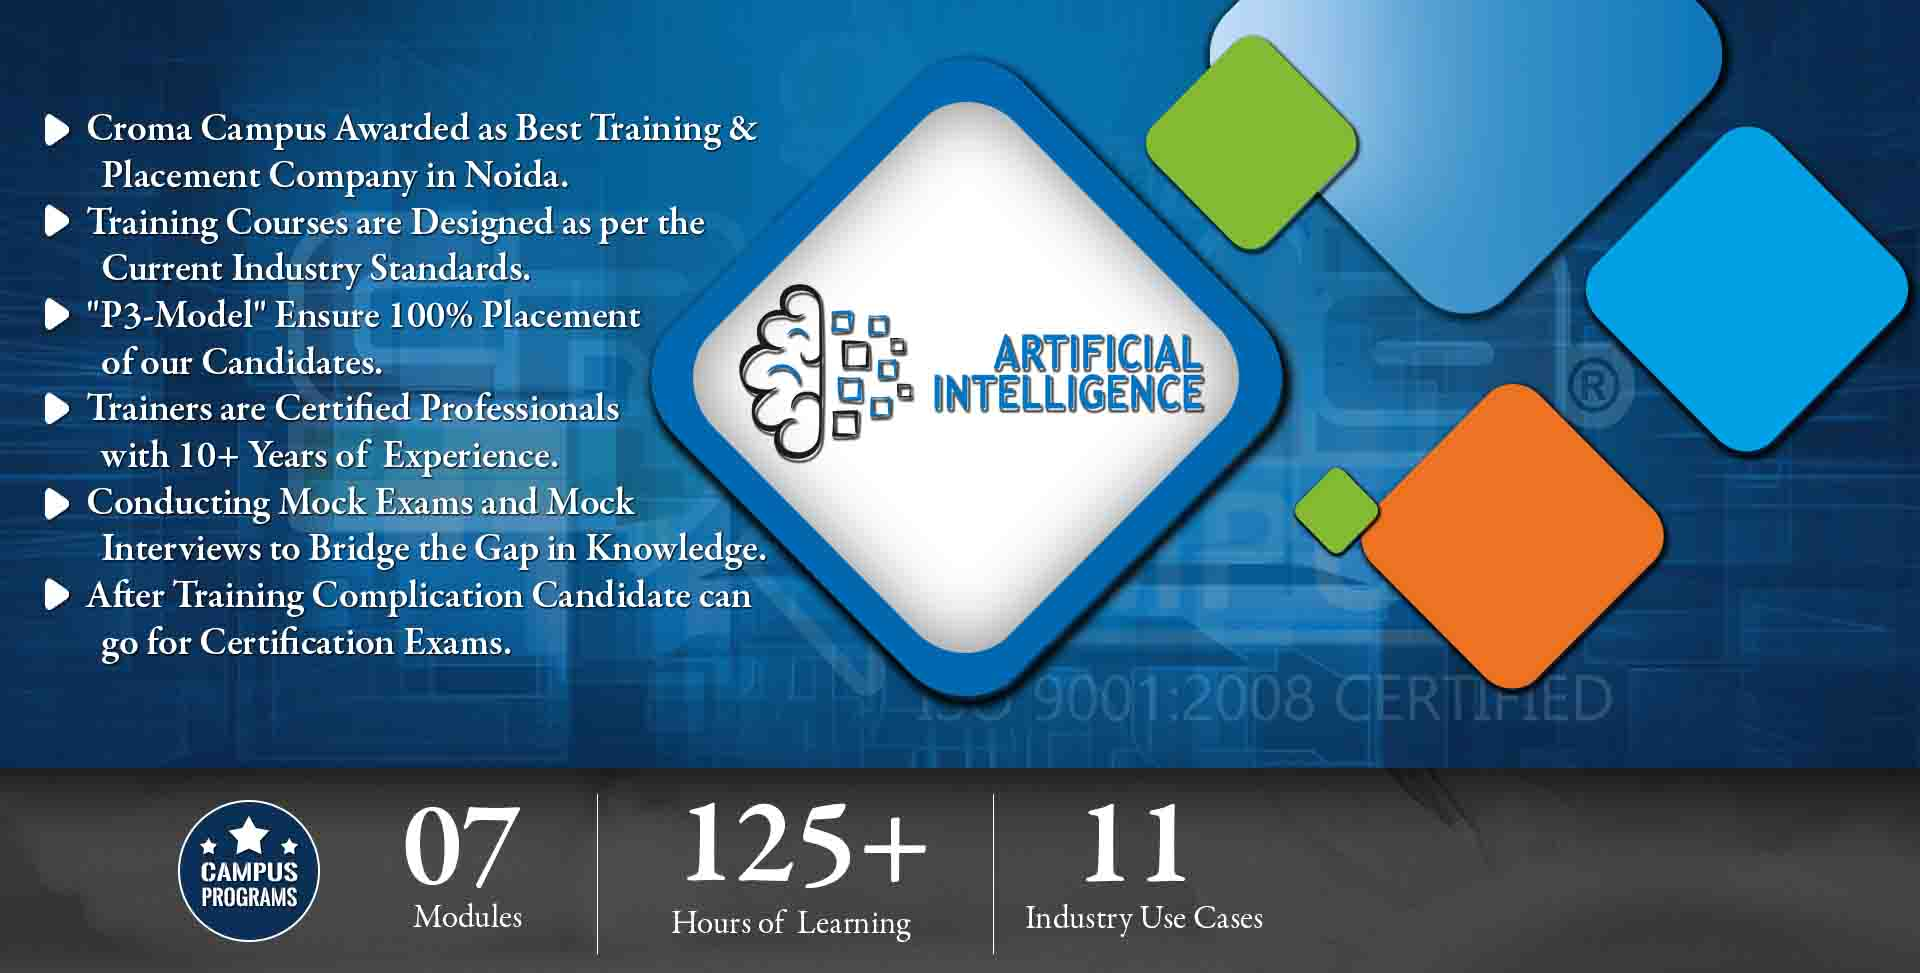 ARTIFICIAL INTELLIGENCE Training in Delhi- Croma Campus